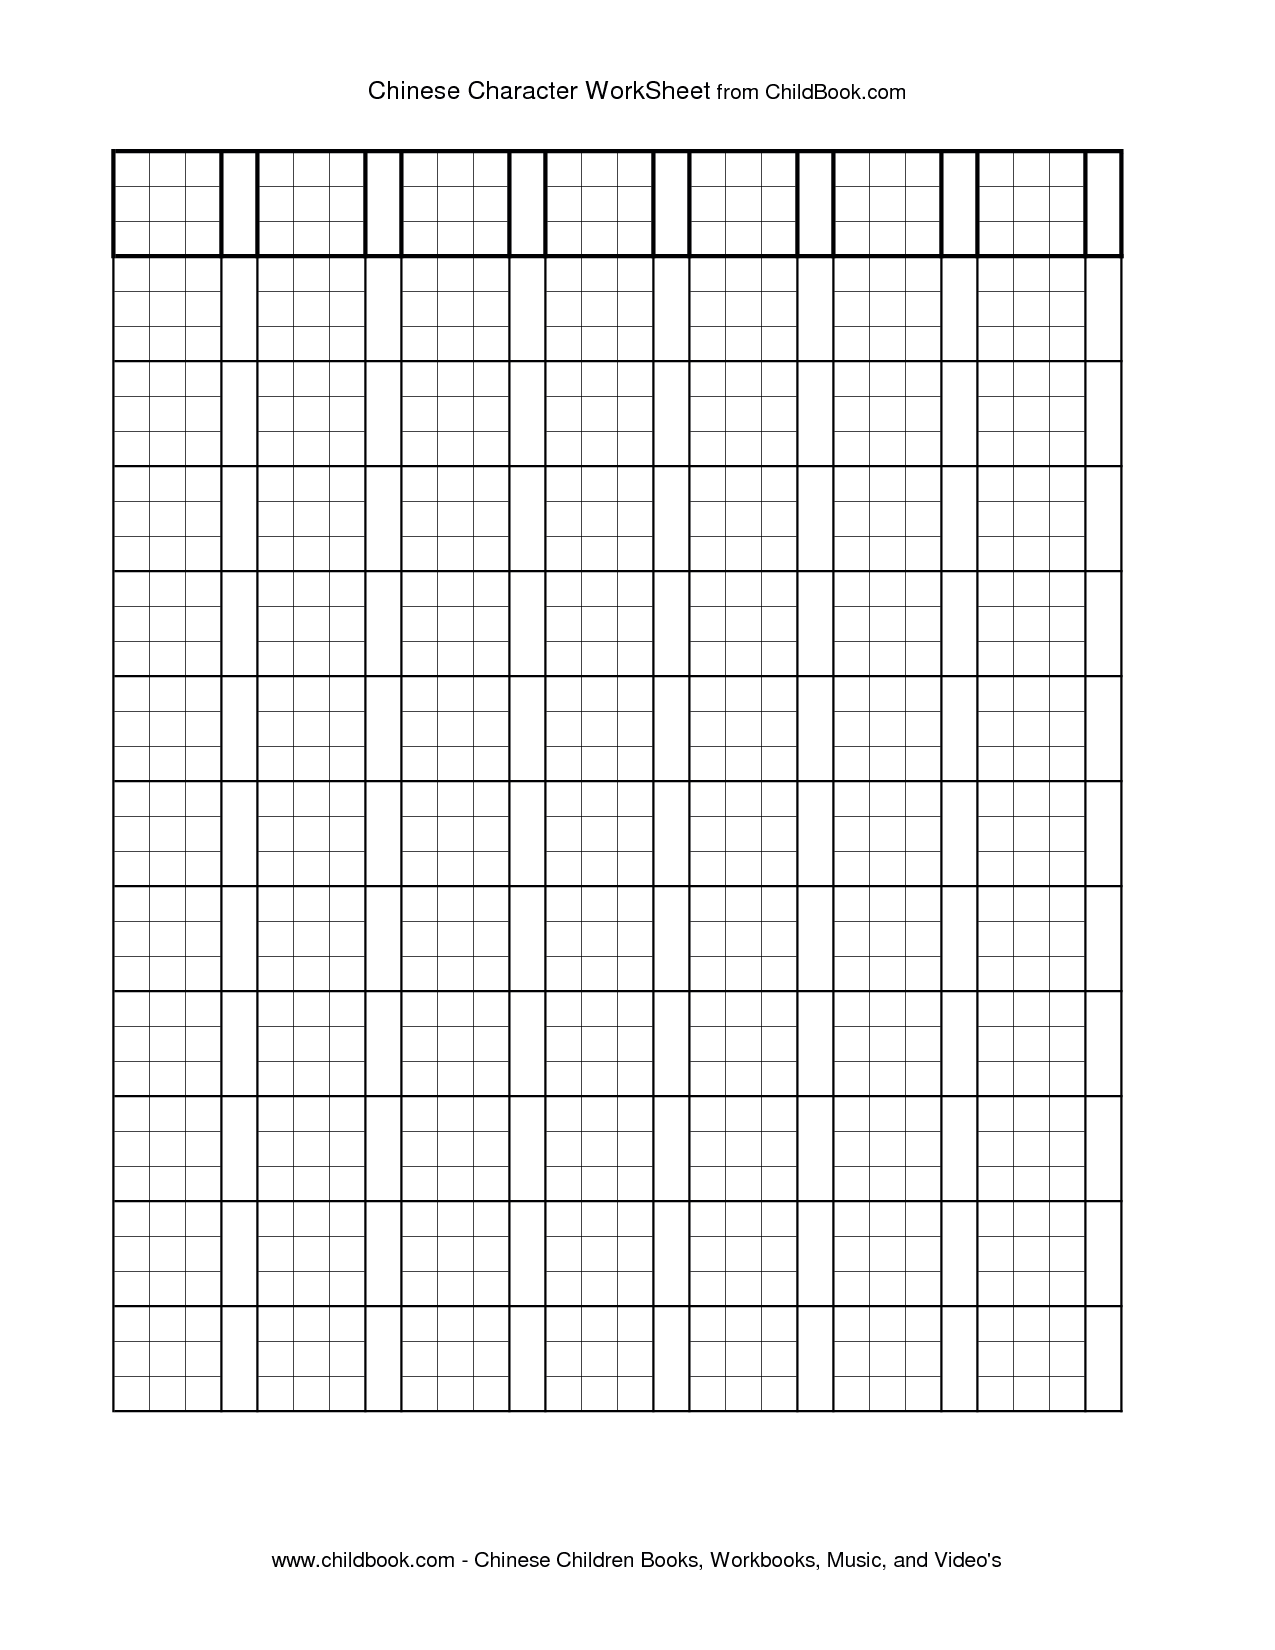 Chinese Character Practice Sheets Printable